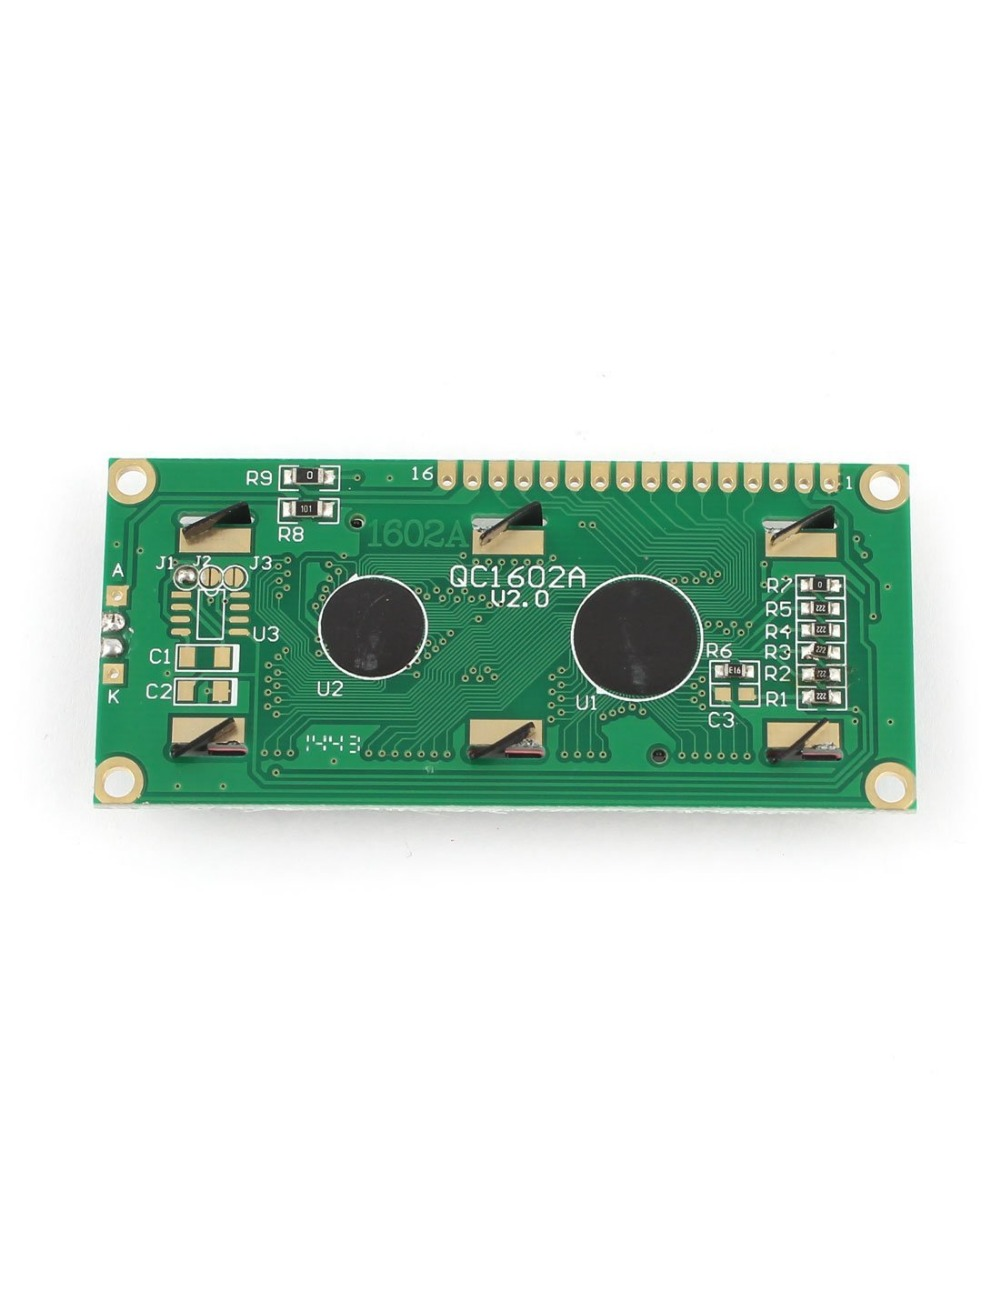 1602 Lcd Display 16 X 2 Lcd Screen Module Without Backlight